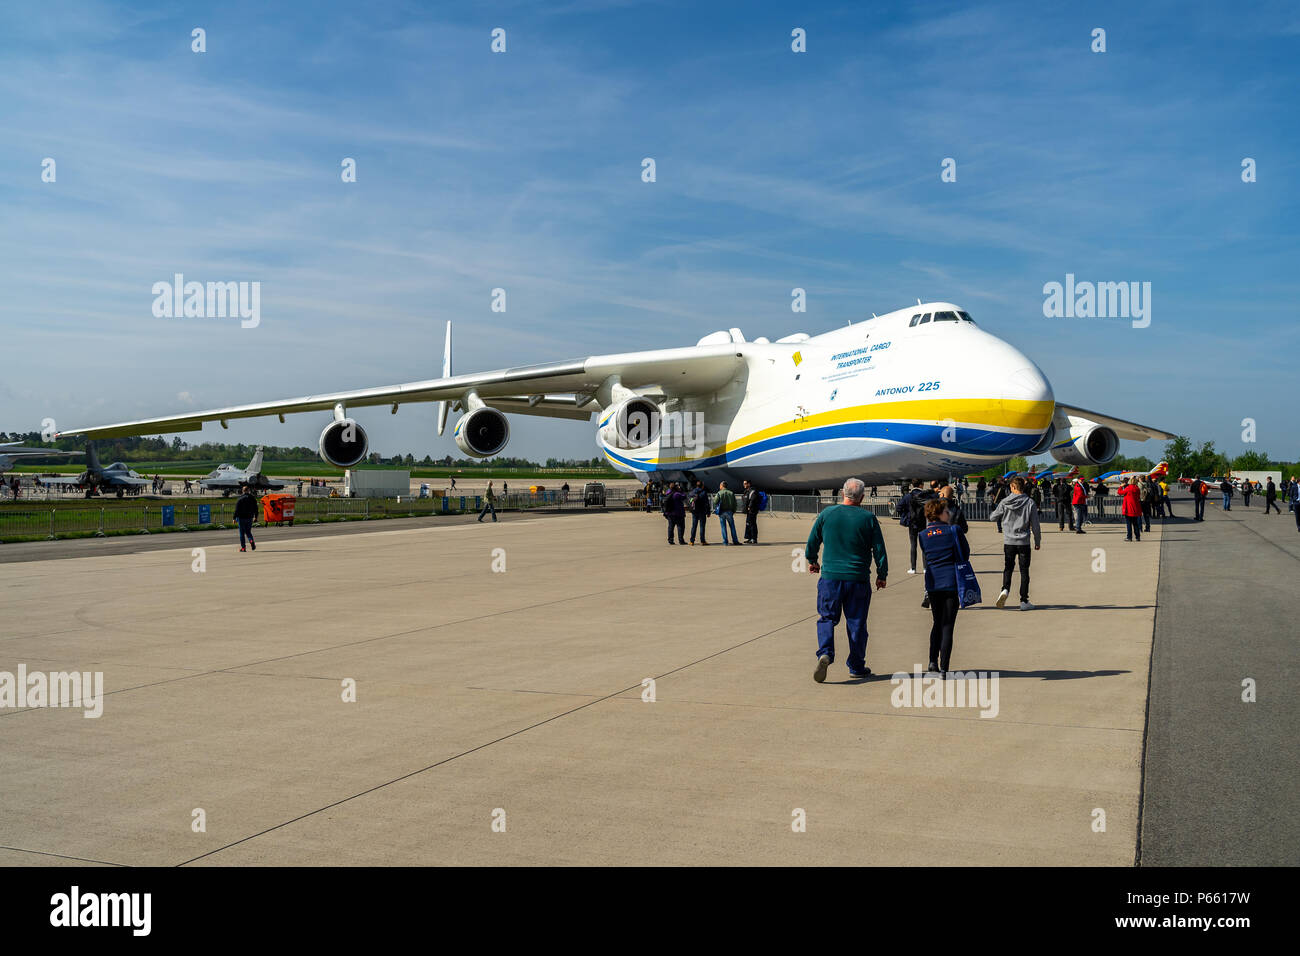 BERLIN, GERMANY - APRIL 27, 2018: Strategic airlifter Antonov An-225 Mriya by Antonov Airlines on the airfield. Exhibition ILA Berlin Air Show 2018 - Stock Image